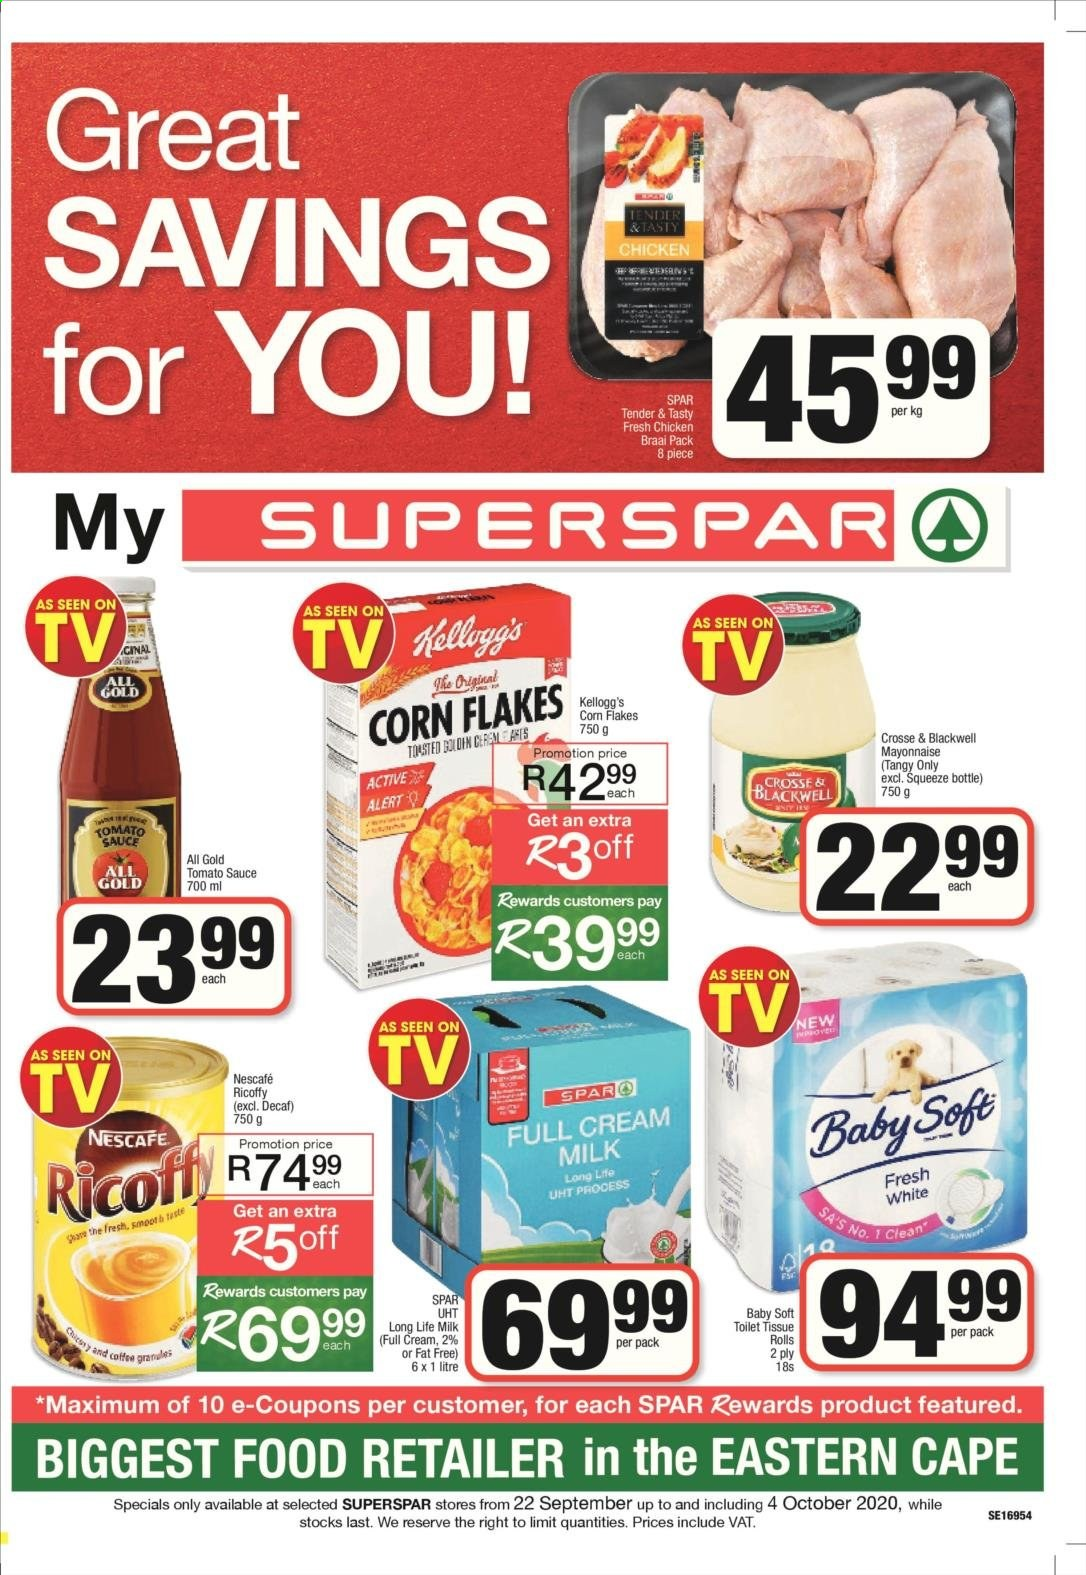 SPAR catalogue  - 09.22.2020 - 10.04.2020 - Sales products - coffee, corn, cream, mayonnaise, milk, tomato sauce, chicken, corn flakes, ricoffy, sauce, flakes, toilet tissue, rolls, nescafé, long life milk, tomato, alert. Page 1.